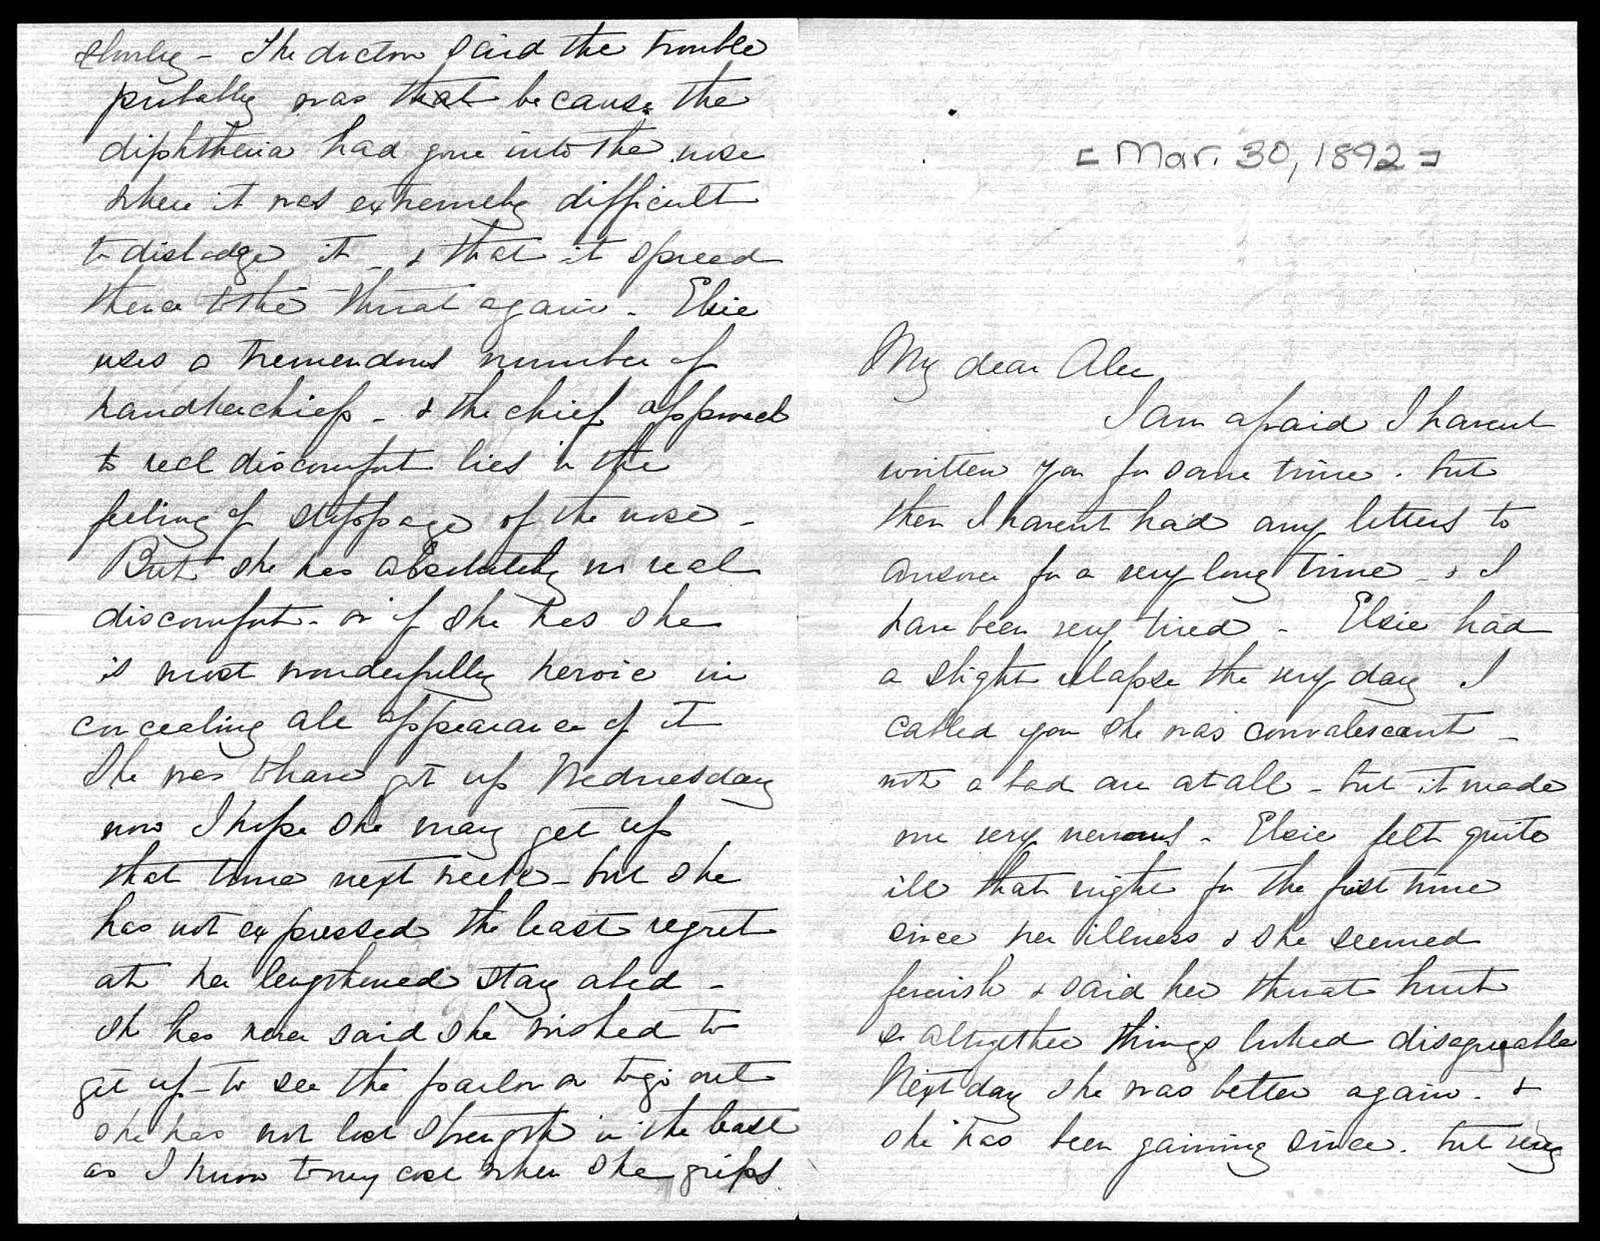 Letter from Mabel Hubbard Bell to Alexander Graham Bell, March 30, 1892